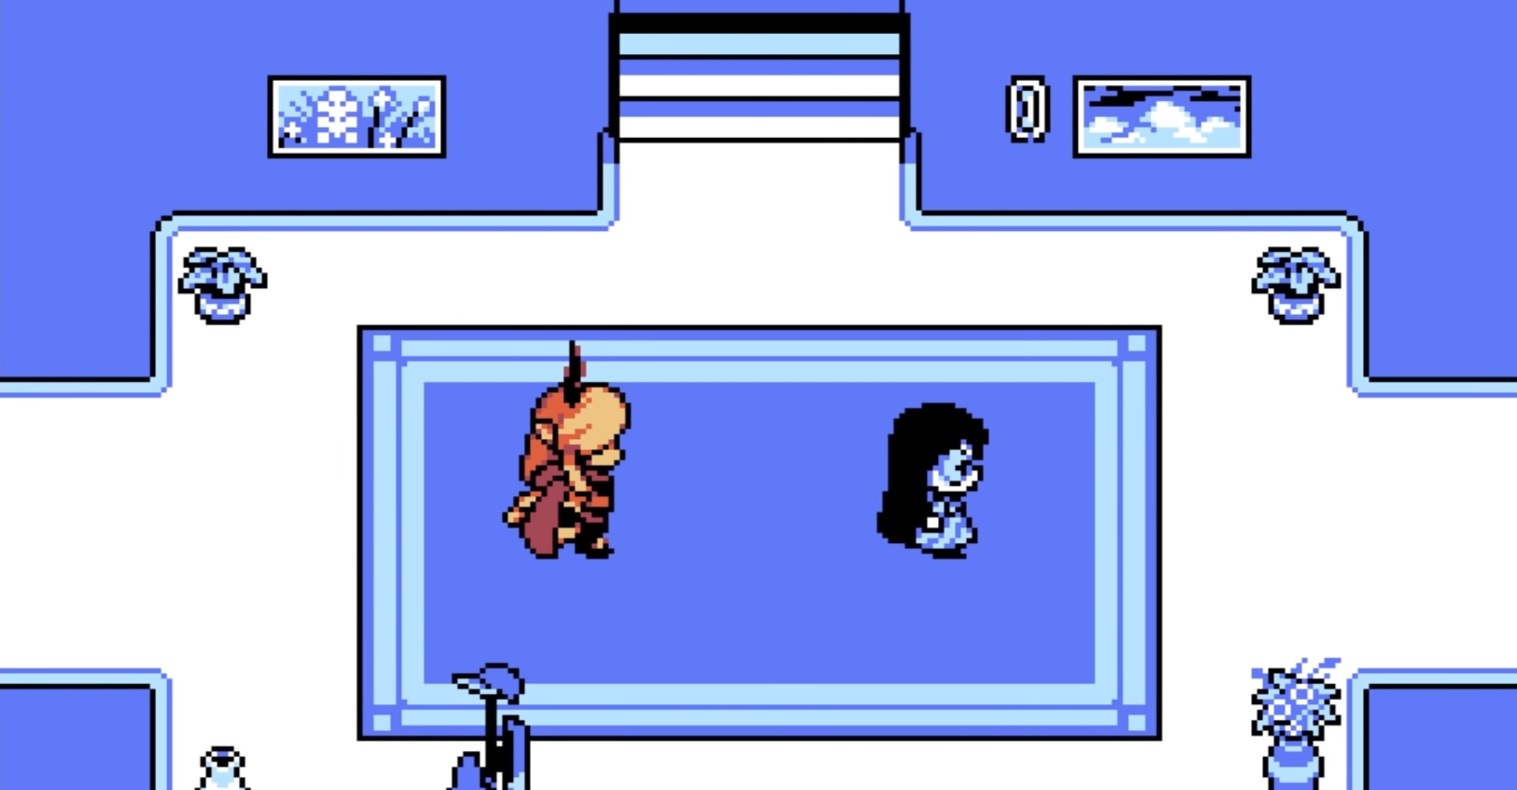 Undertale artist releases free game Escaped Chasm screenshot